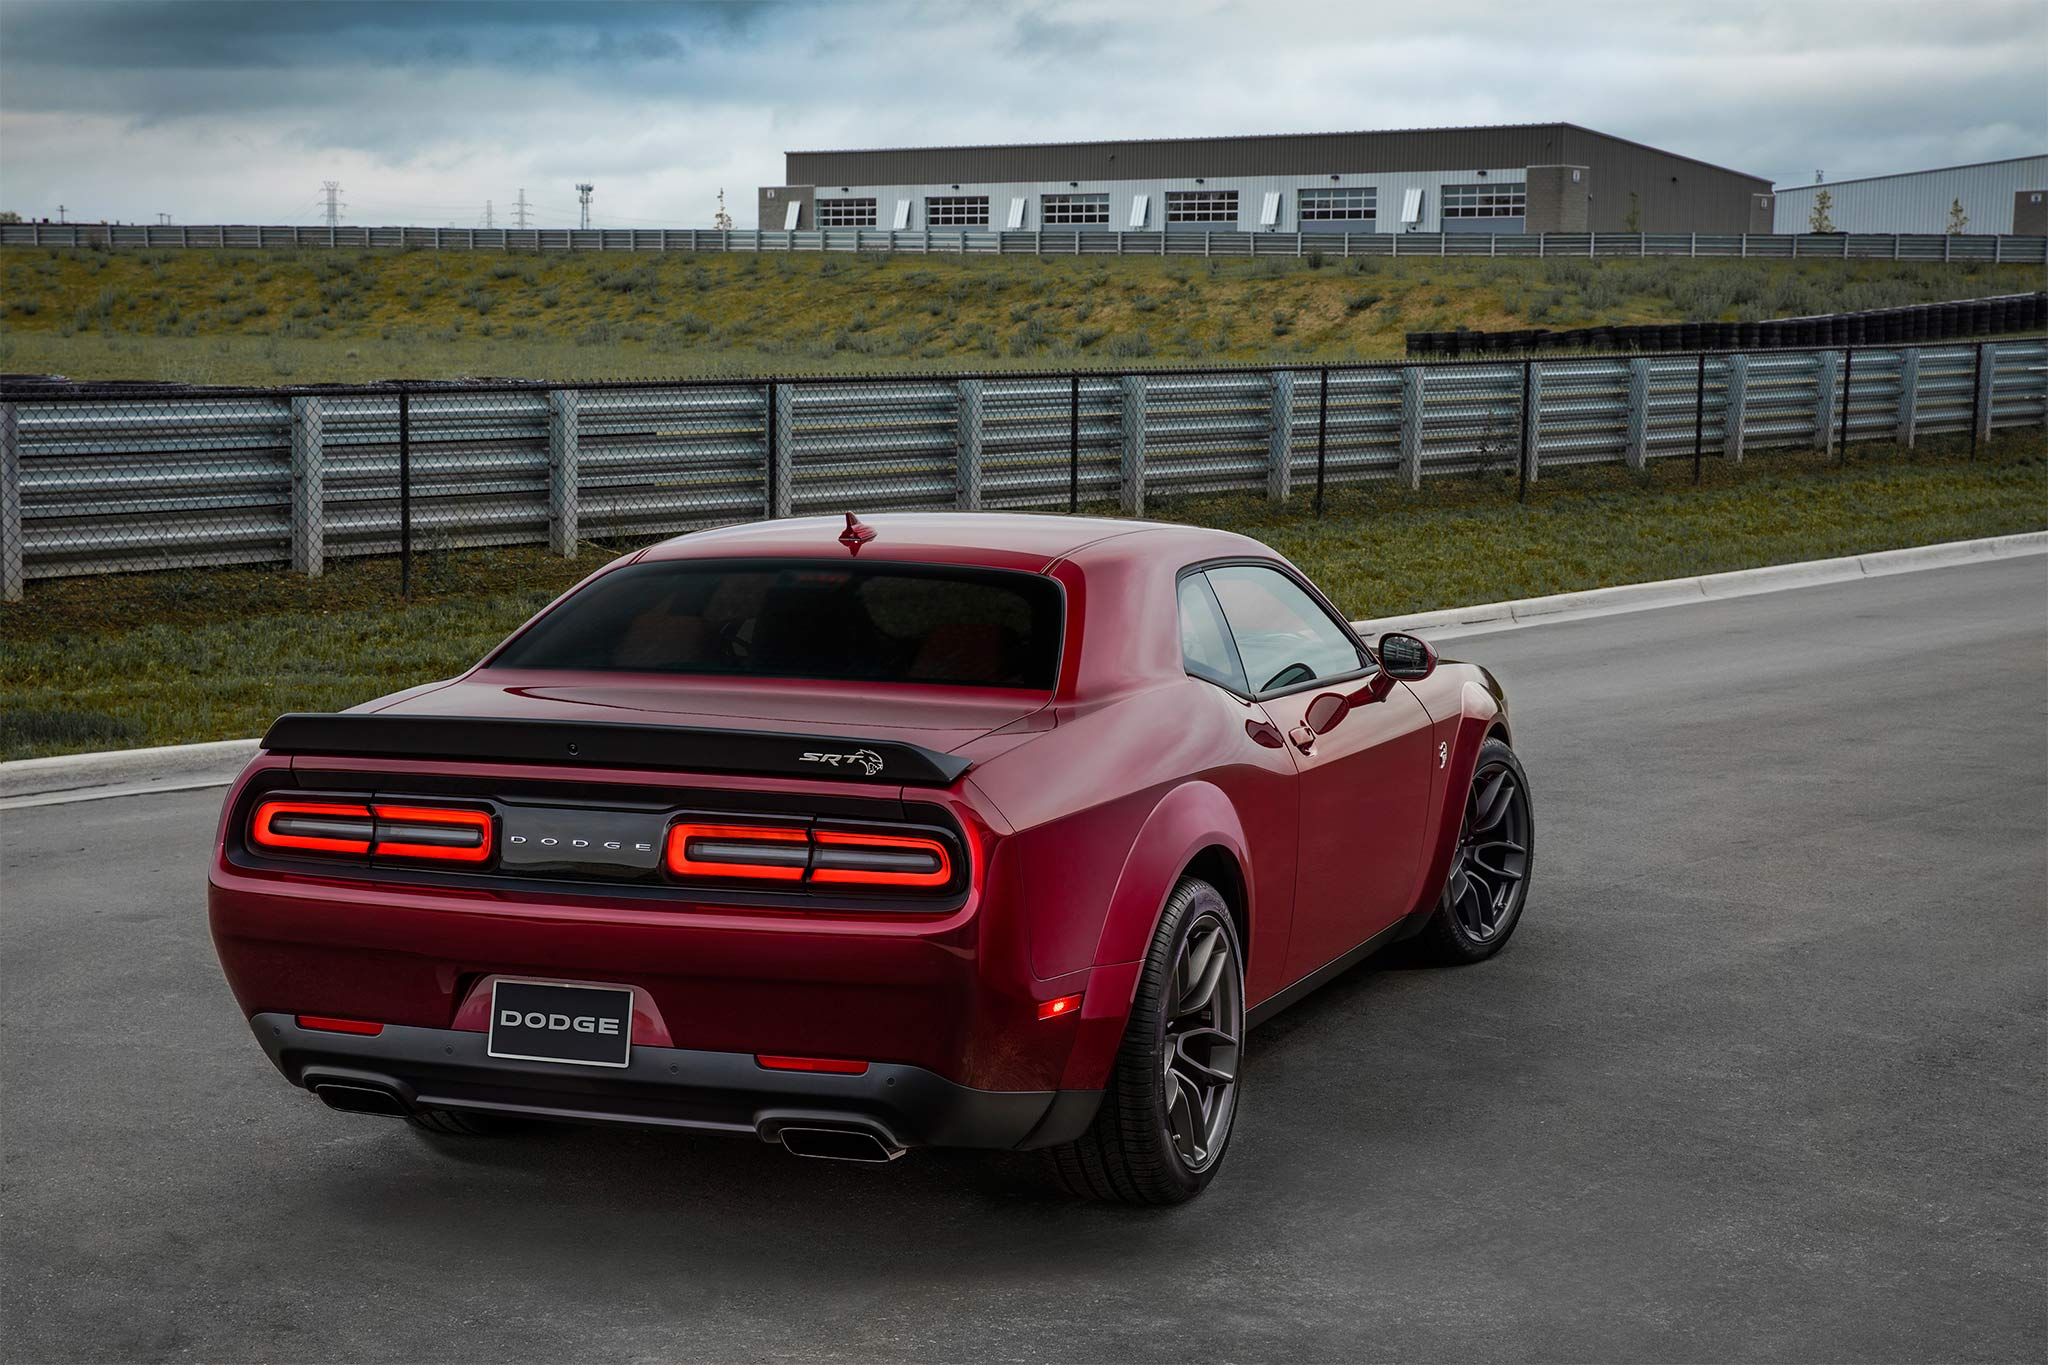 2018 Dodge Challenger SRT Hellcat rear three quarter 02